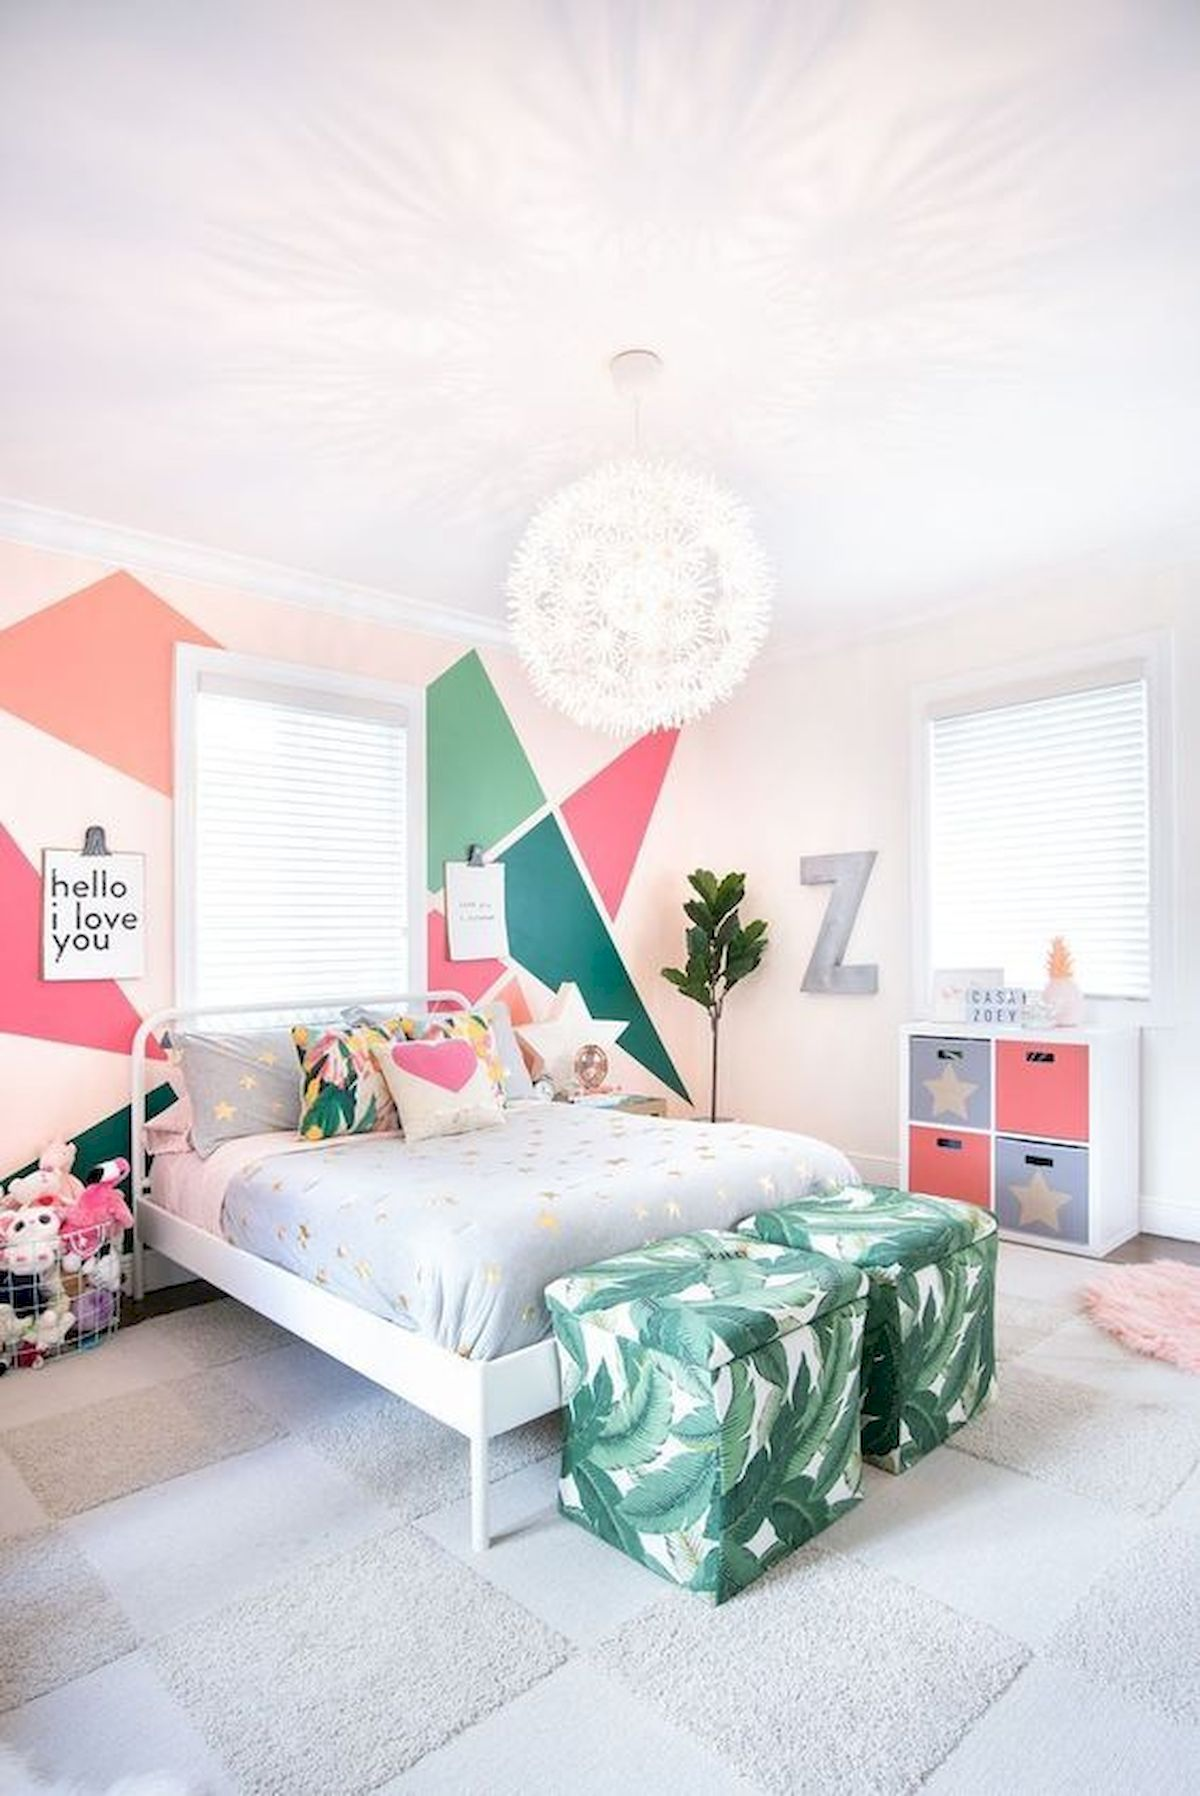 60 Cute DIY Bedroom Design and Decor Ideas for Kids (43)